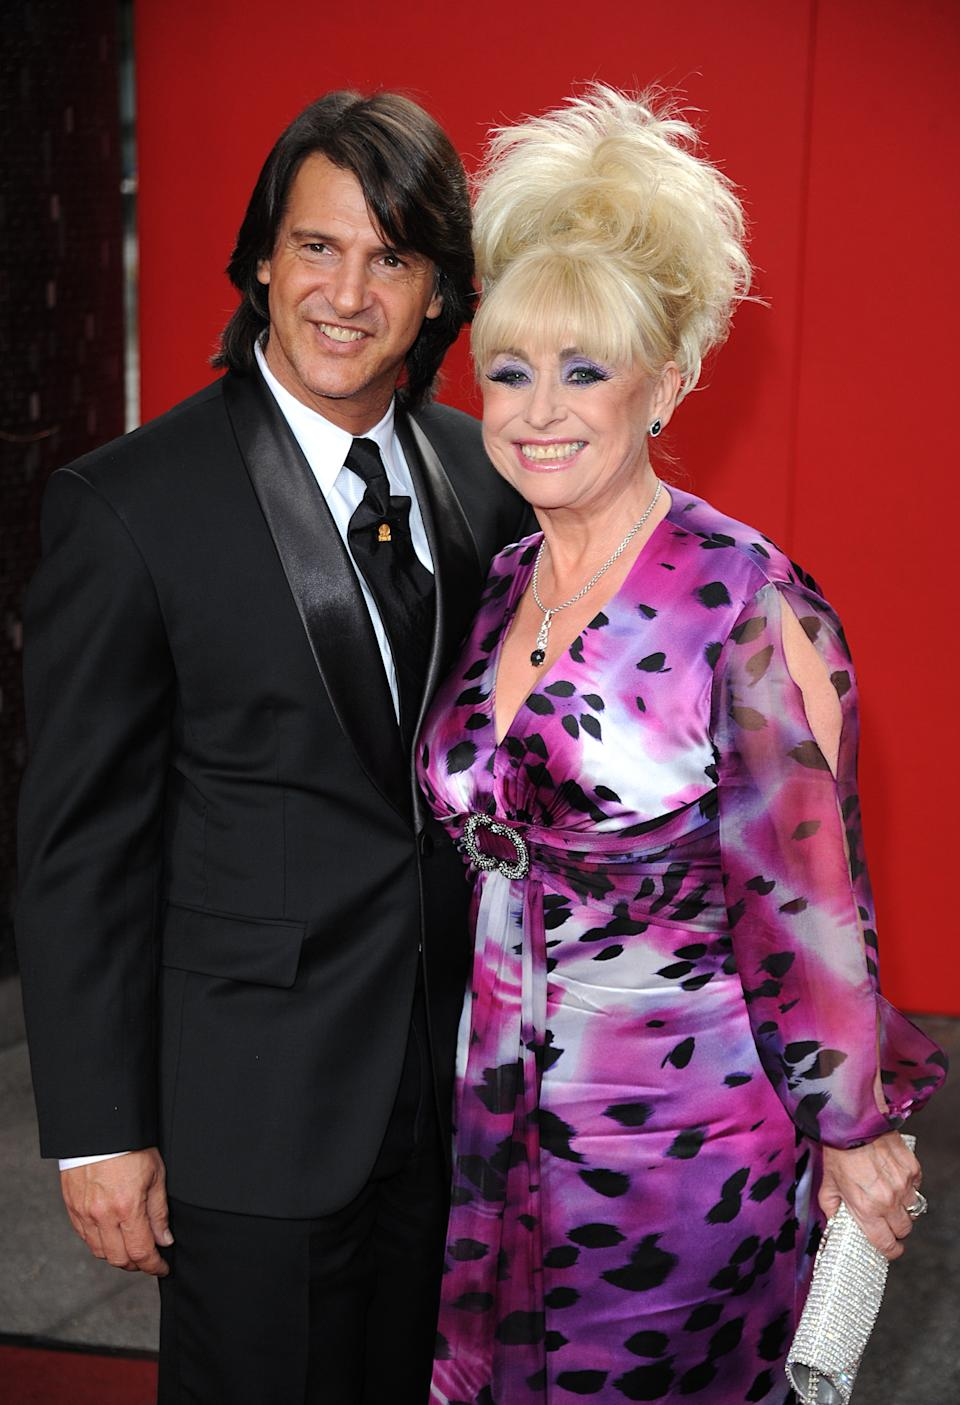 Barbara Windsor and husband Scott Mitchell arriving for the 2009 British Soap Awards at the BBC Television Centre, Wood Lane, London.